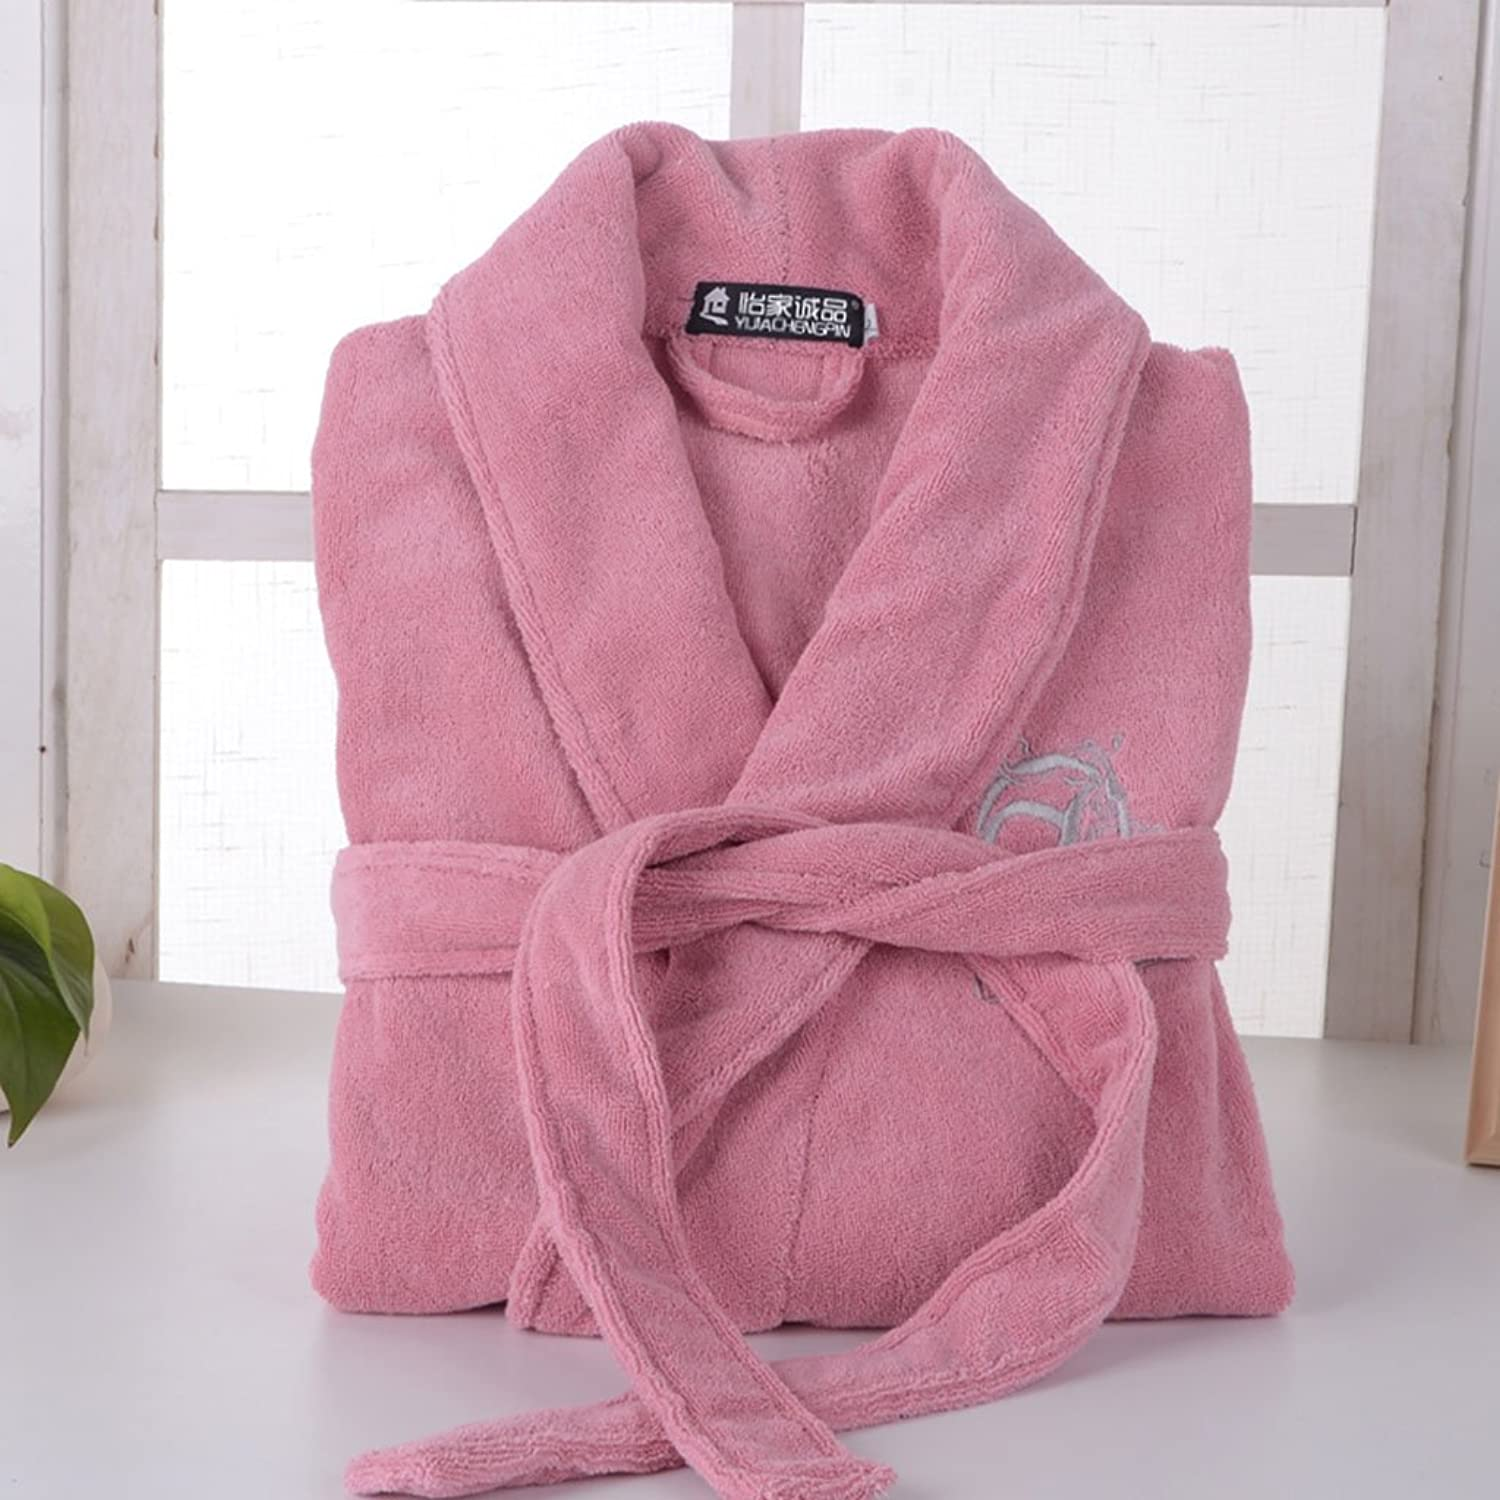 GJM Shop 100% Cotton Bathrobe Thicker Cotton Male and Female Adults Autumn and Winter Nightgown (color   1, Size   M)